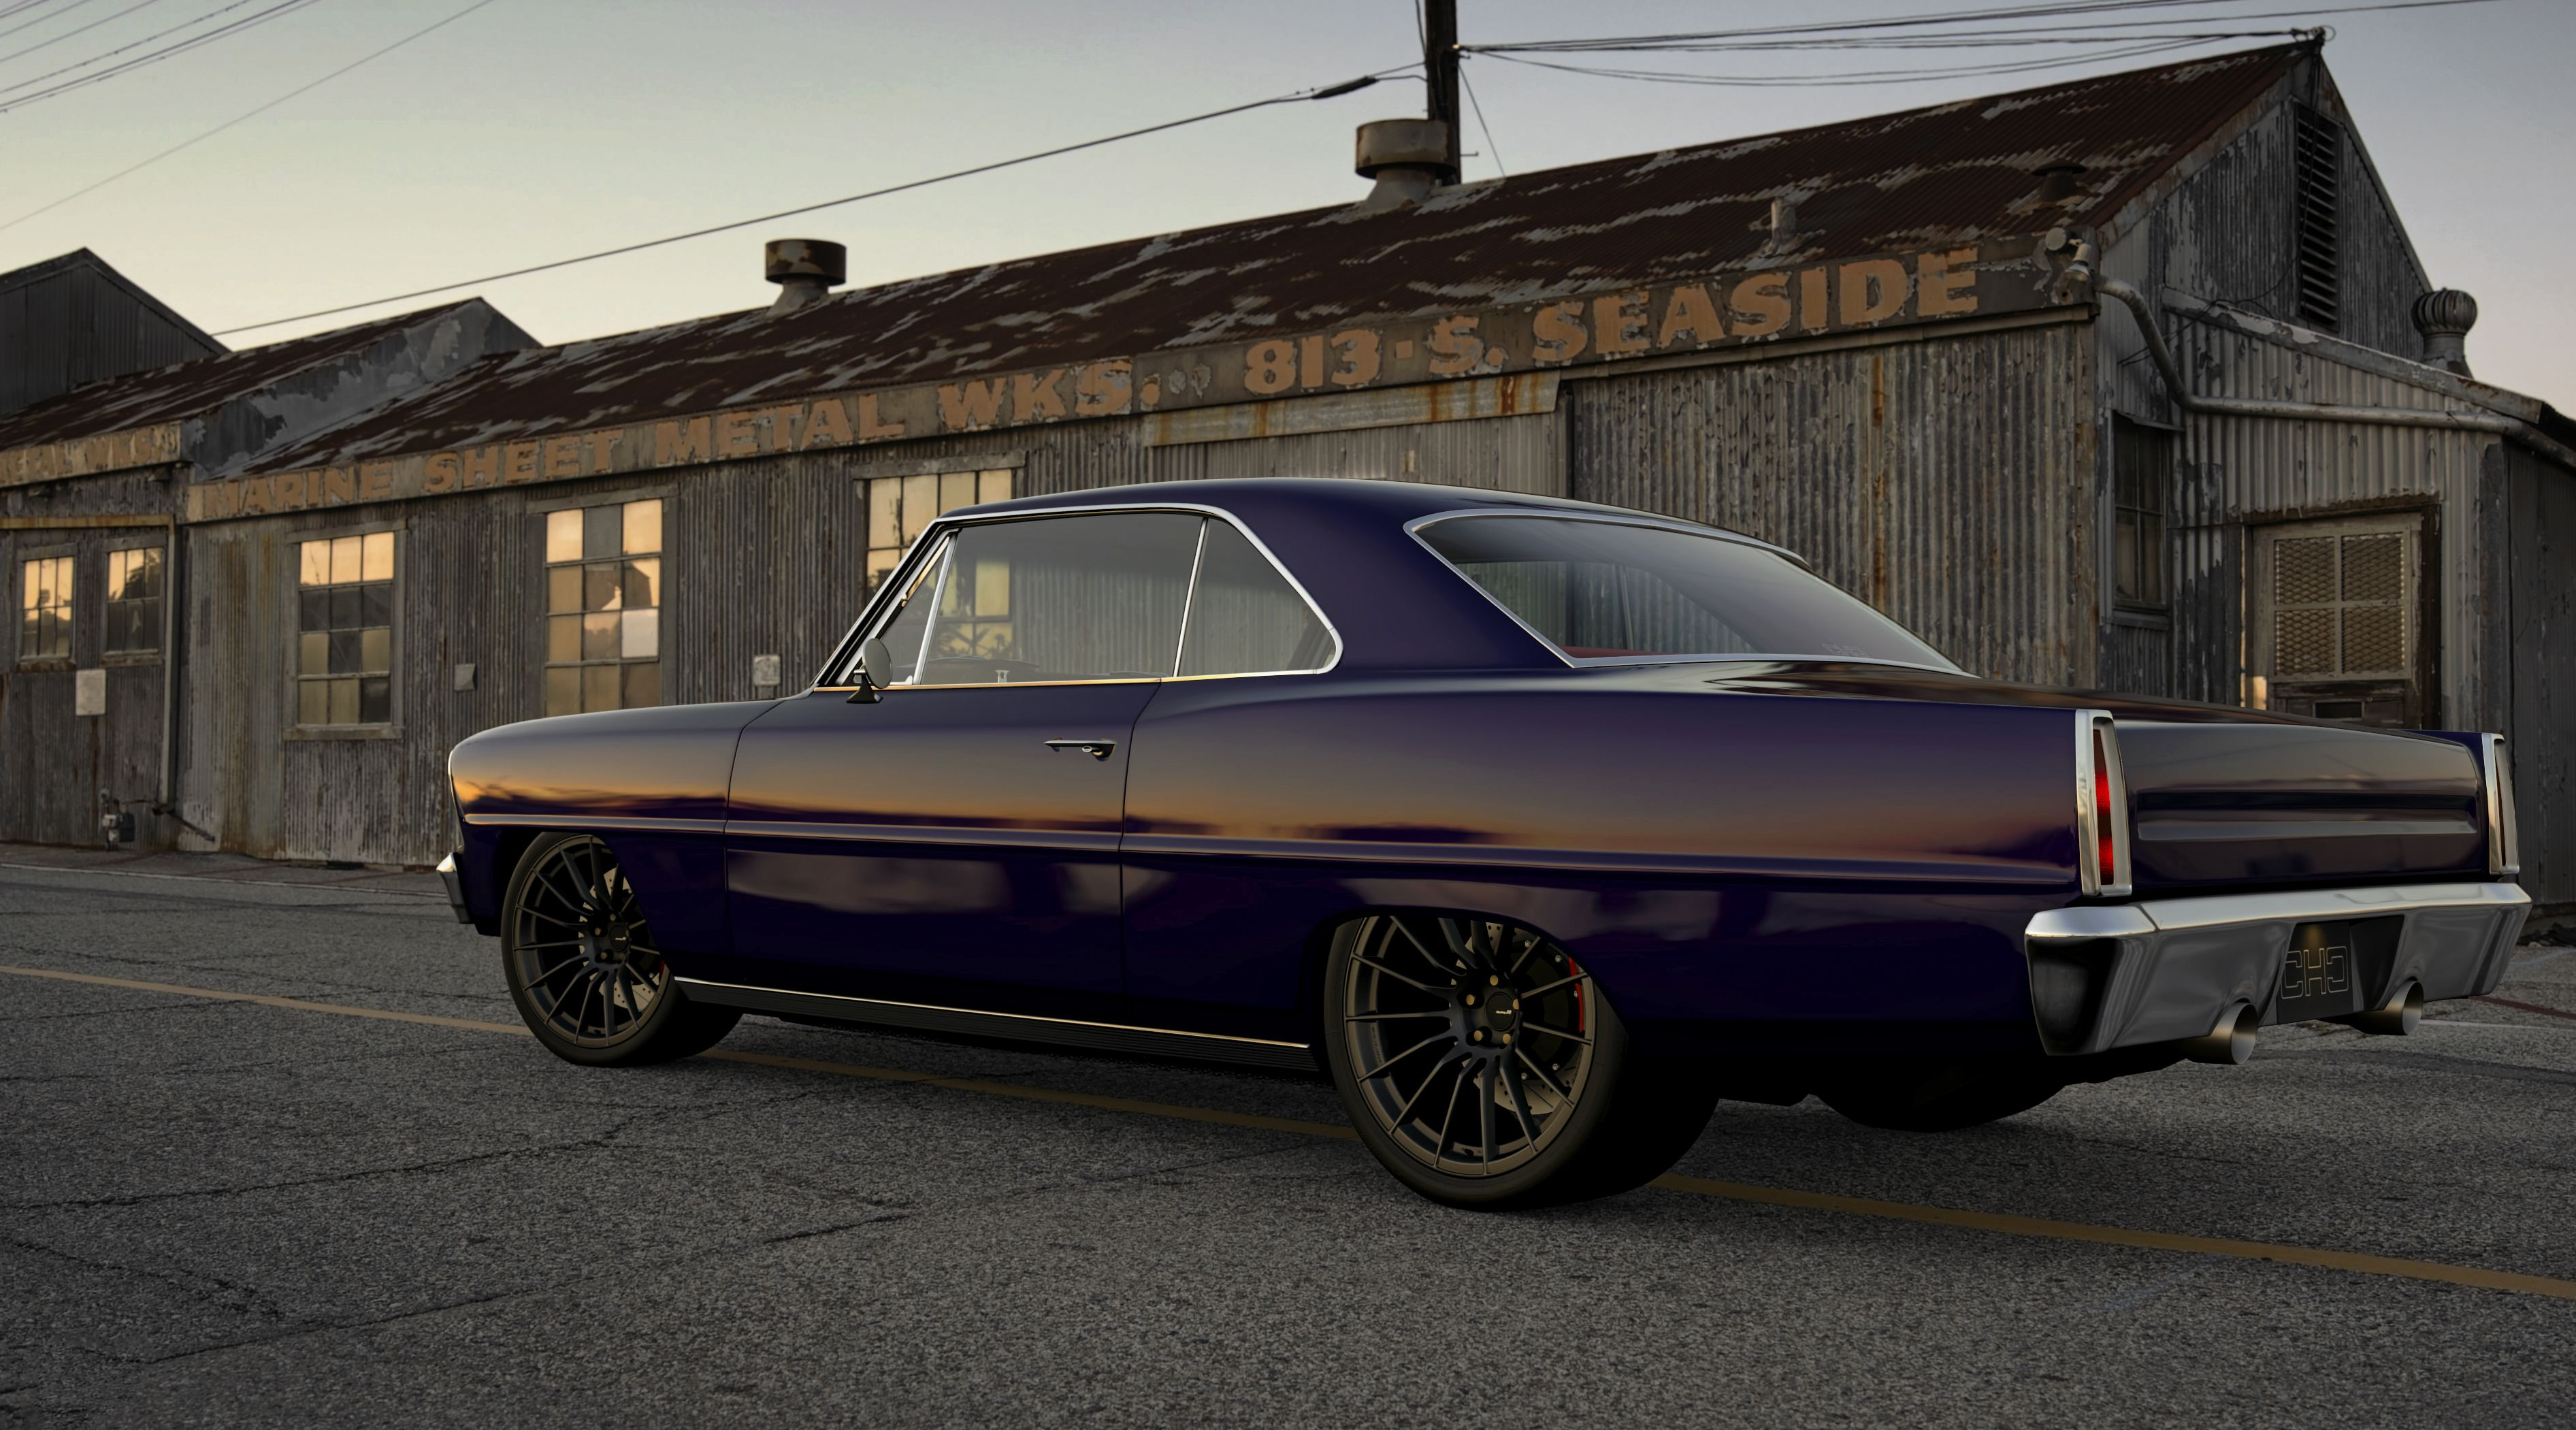 Car Pictures Wallpaper Net Speed Gran Turismo Chris Holstrom Concepts 1967 Chevy Nova